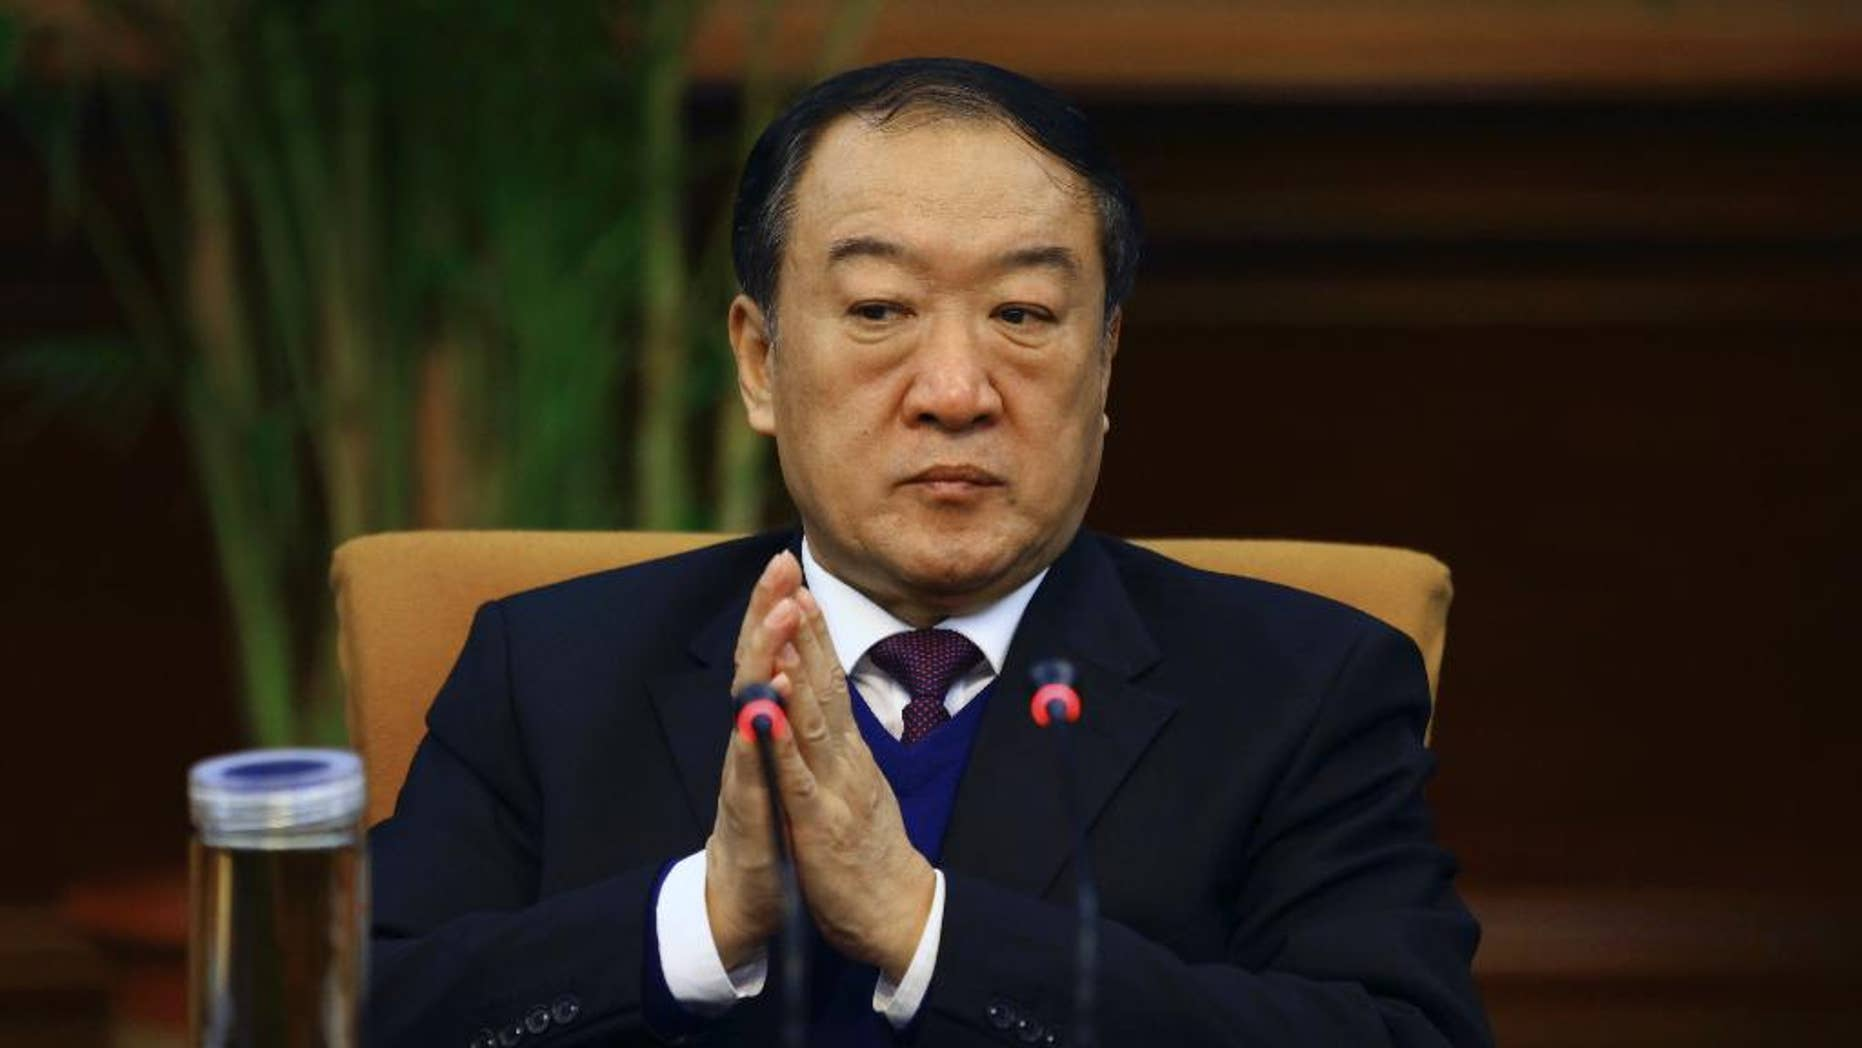 "In this March 6, 2012 photo, Su Rong, ex-vice chairman for the Chinese People's Political Consultative Conference (CPPCC) attends a group session during the National People's Congress in Beijing. Chinese authorities say the former vice chairman for the country's top political advisory body has been expelled from the Communist Party and stripped of all government positions because of bribery. The Central Commission for Discipline Commission, the Communist Party's top watchdog agency, said Monday, Feb. 16, 2015 in a written statement that Su, took ""huge amounts of bribes"" and sought promotions for cadres and benefits for businesses. (AP Photo) CHINA OUT"